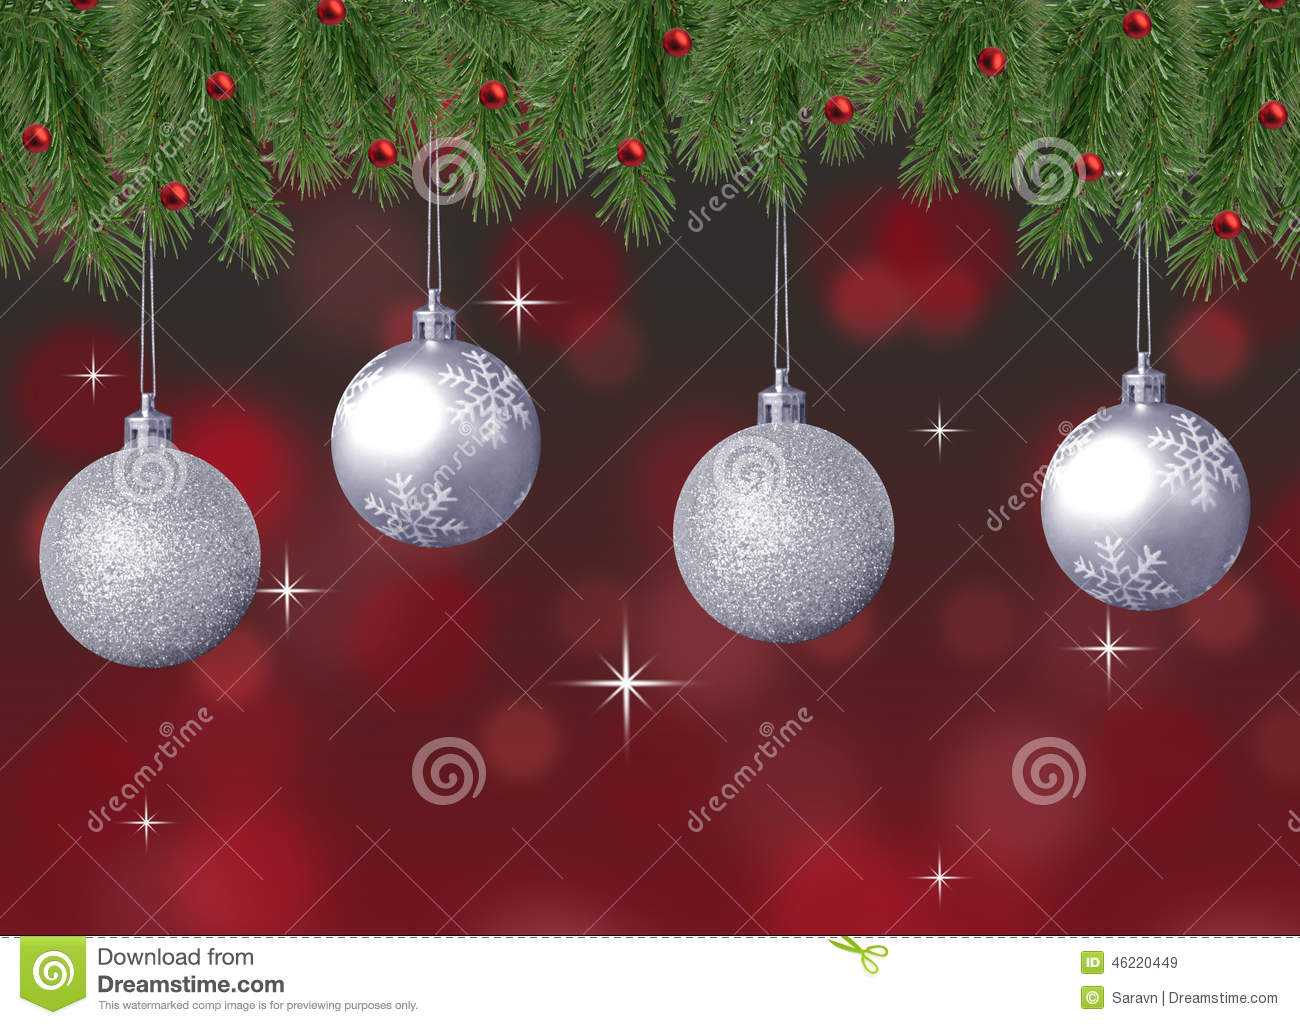 Silver sparkle and snowflake christmas balls with red